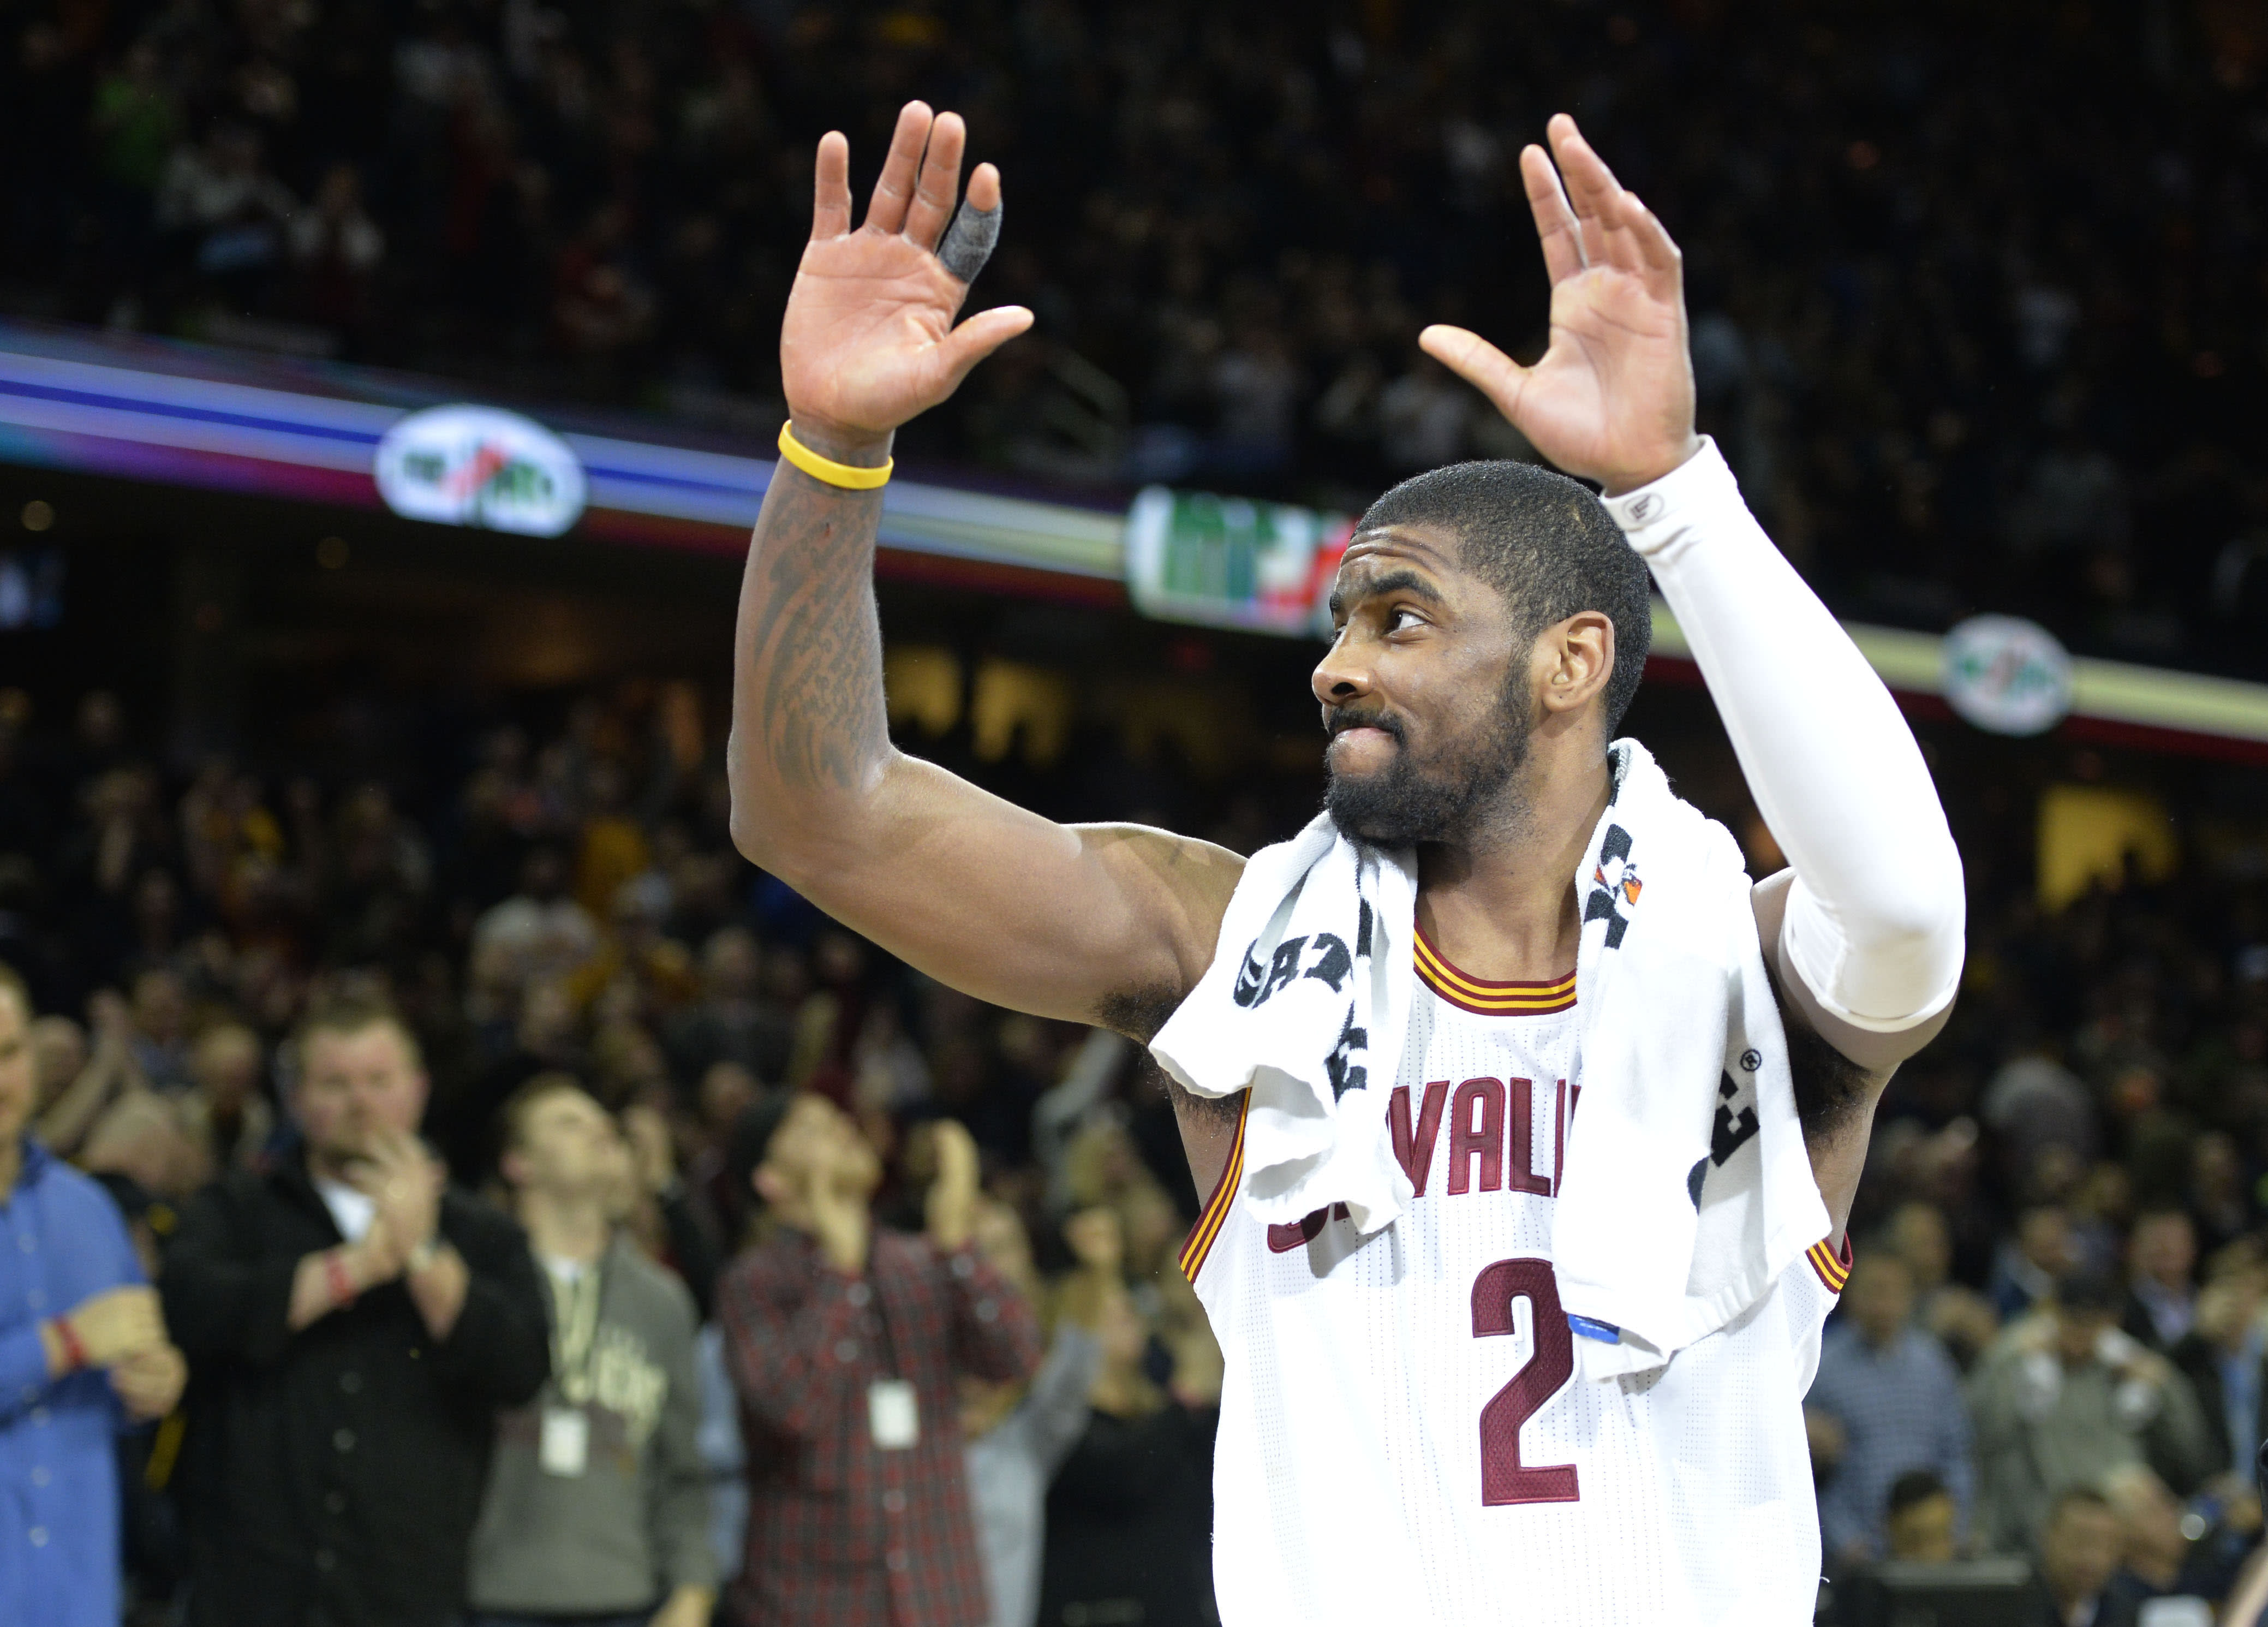 Kyrie Irving scores career NBA season high 55 points to lead